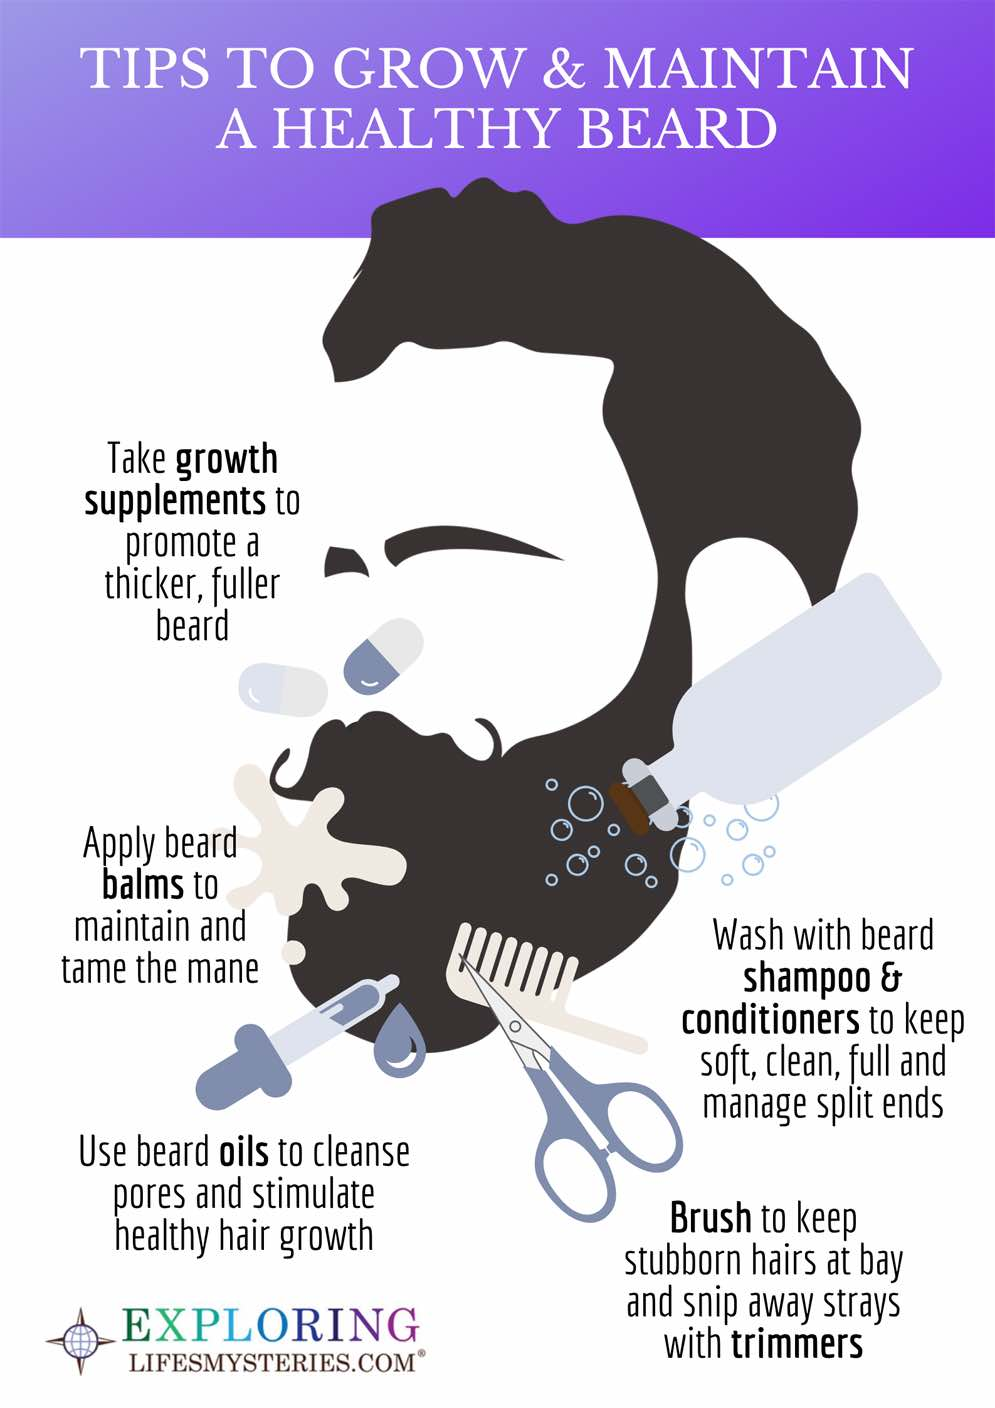 Beard Growth and Care Infographic